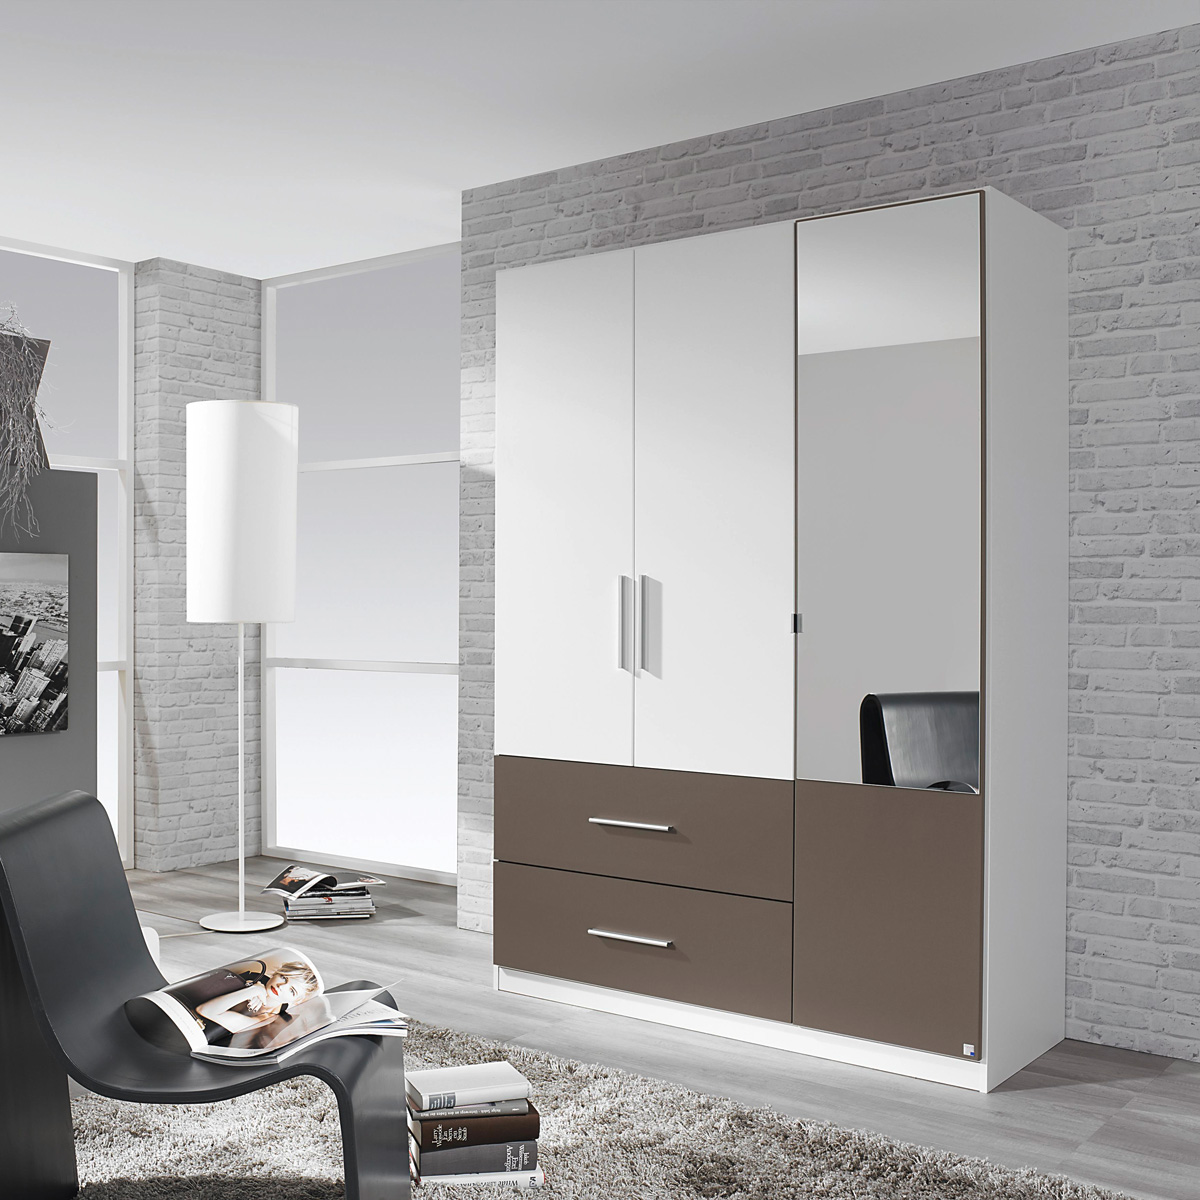 kleiderschrank alvor schrank f r schlafzimmer wei lavagrau mit spiegel 136 cm eur 184 95. Black Bedroom Furniture Sets. Home Design Ideas